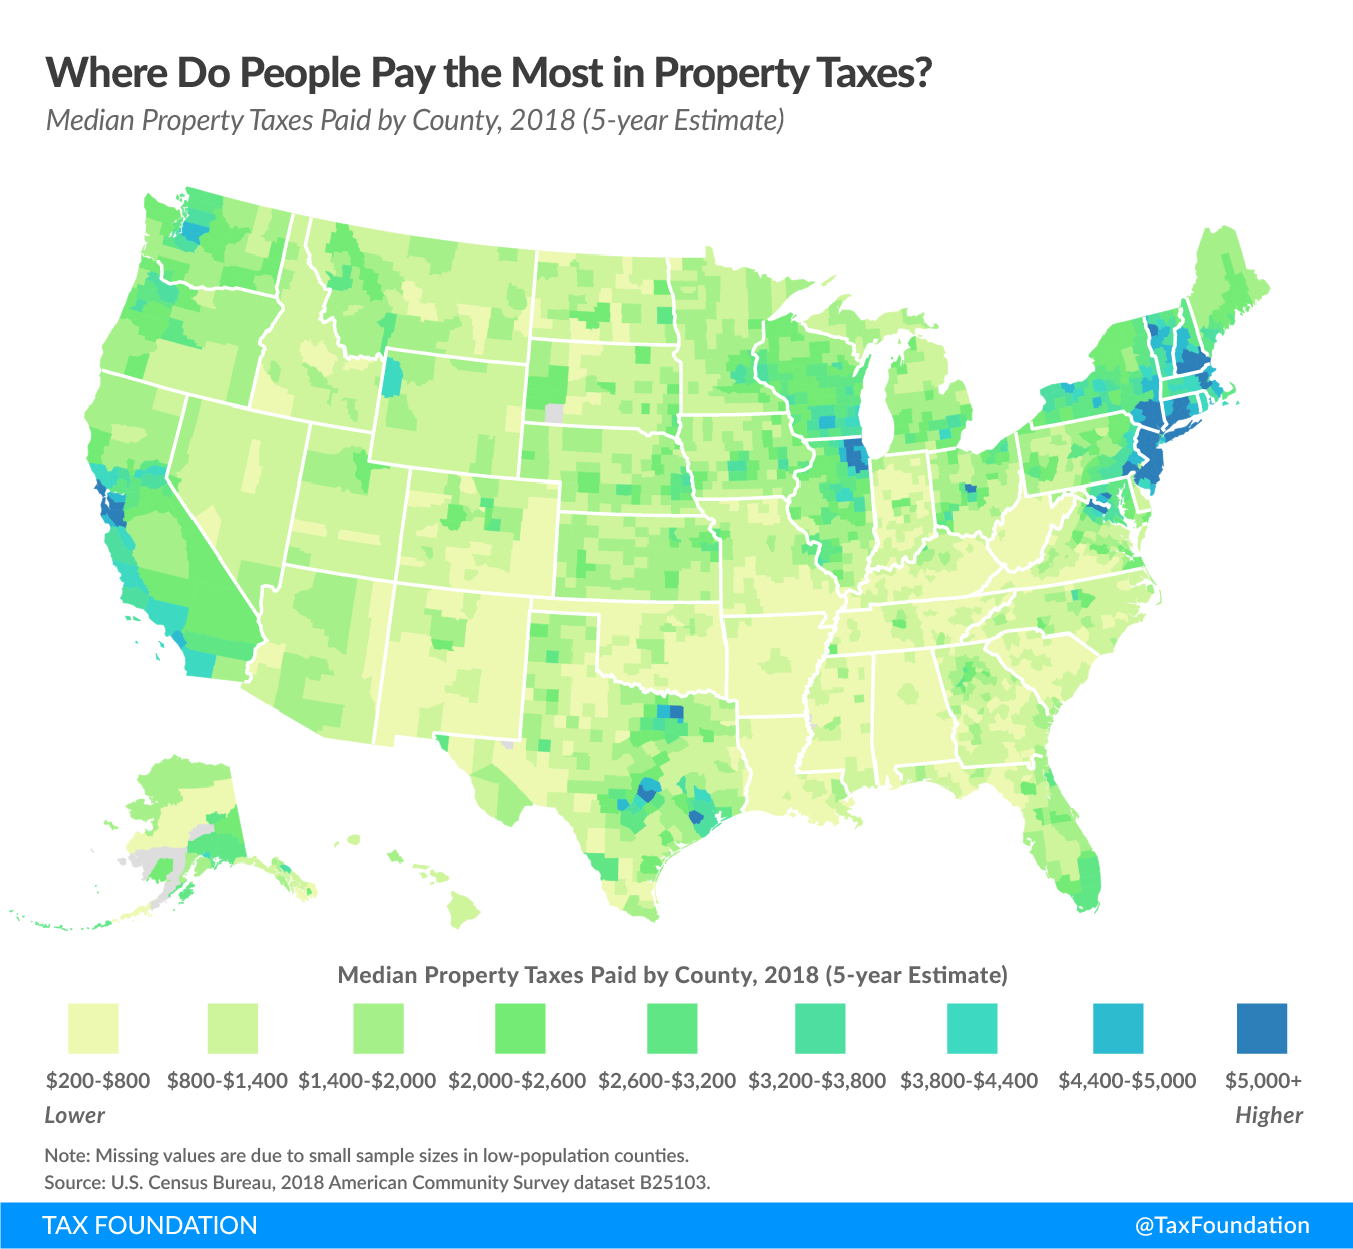 states with the higest property taxes, where do people pay the most in property taxes in the united states